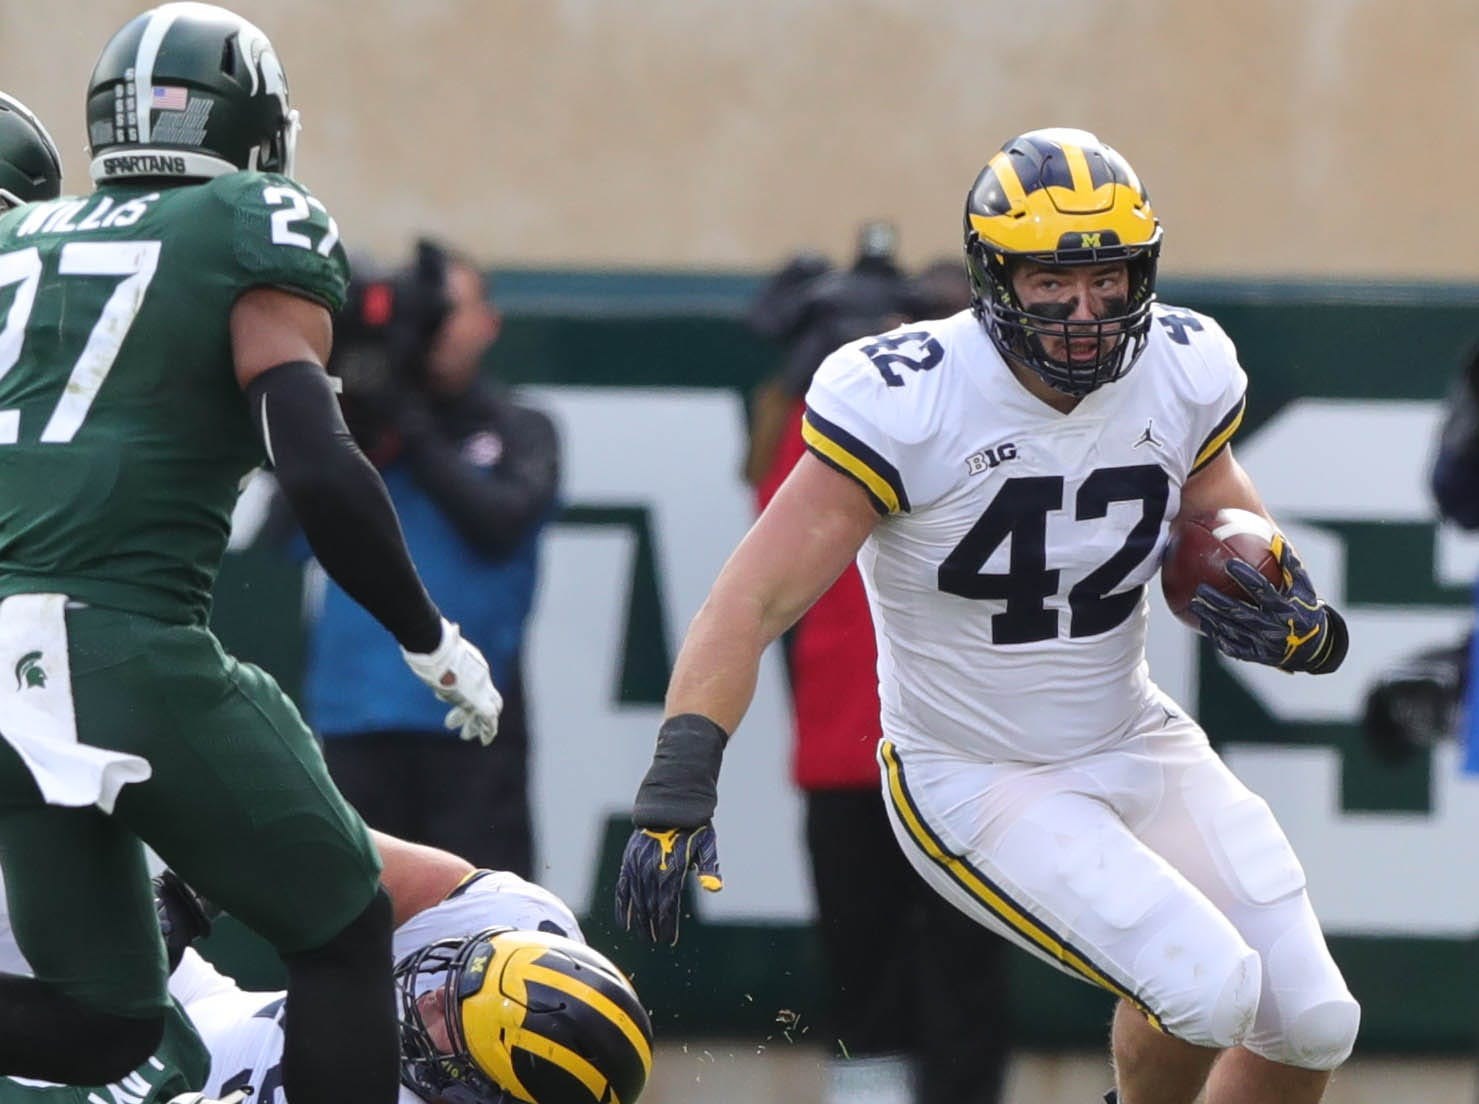 Michigan's Ben mason runs the ball against Michigan State during the first half in Spartan Stadium on Saturday, Oct. 20, 2018.